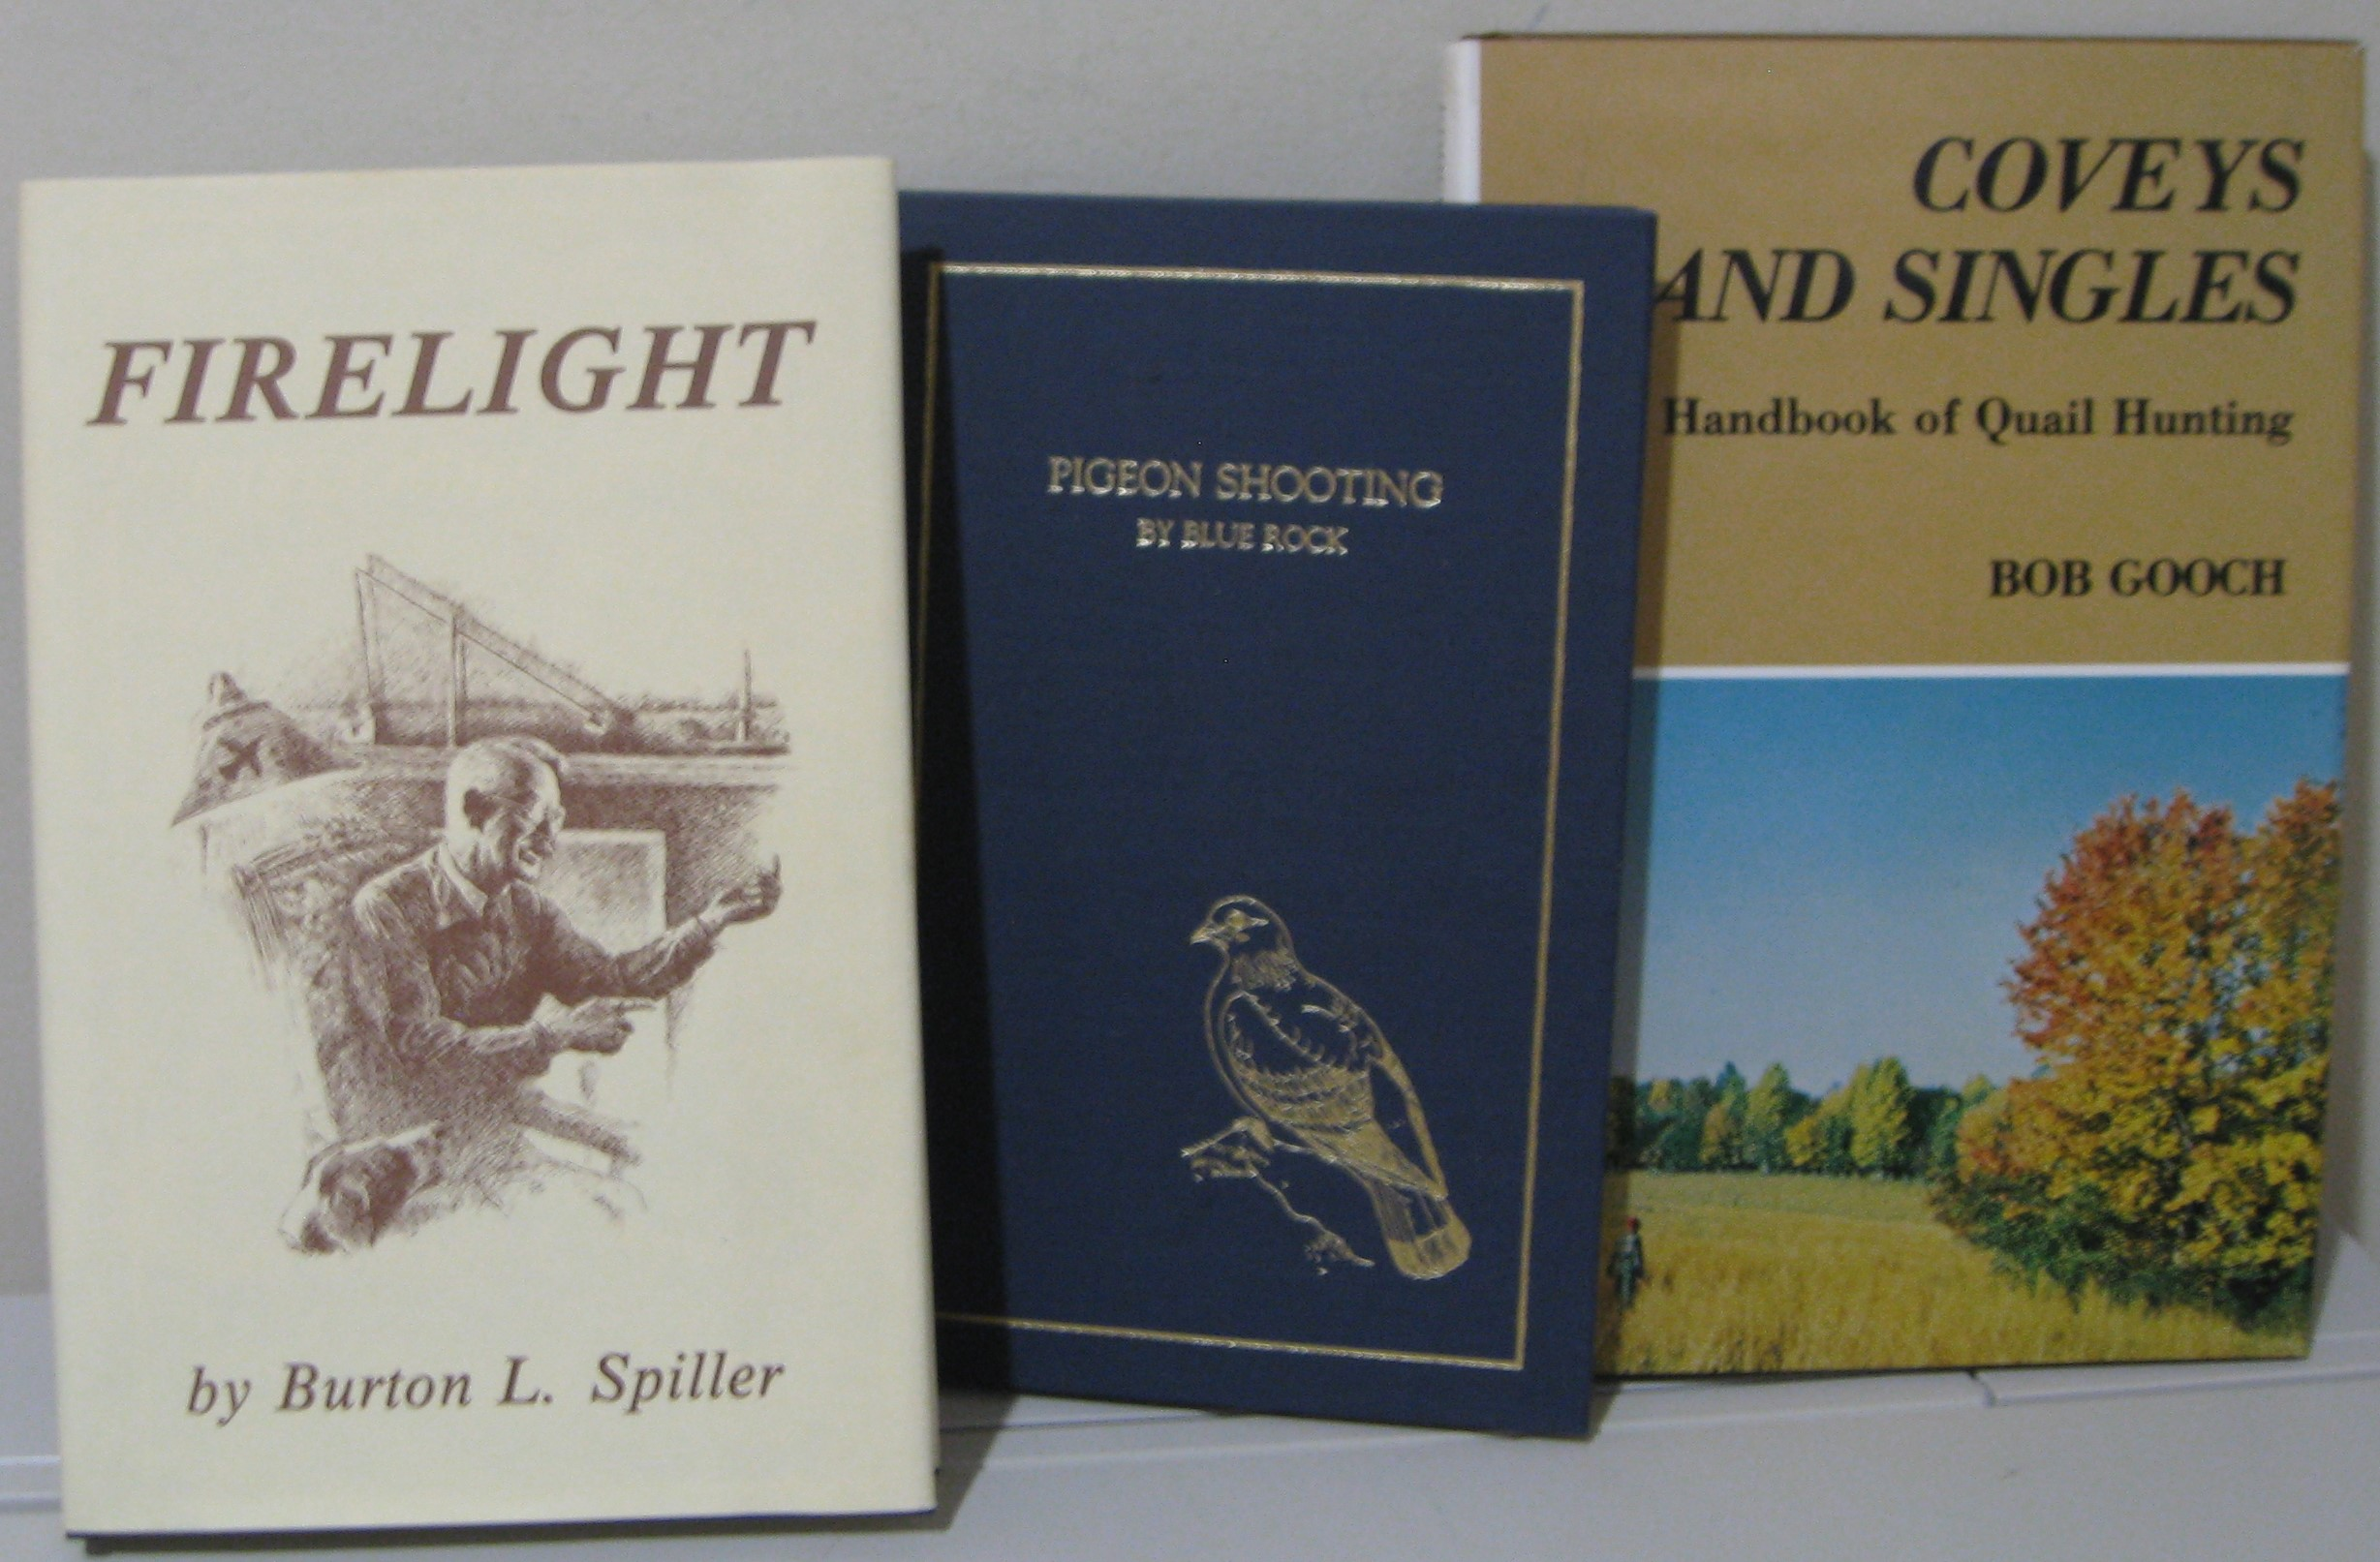 Image for FIRELIGHT; &  COVEYS AND SINGLES (THE HANDBOOK OF QUAIL HUNTING) & - PIGEON SHOOTING -